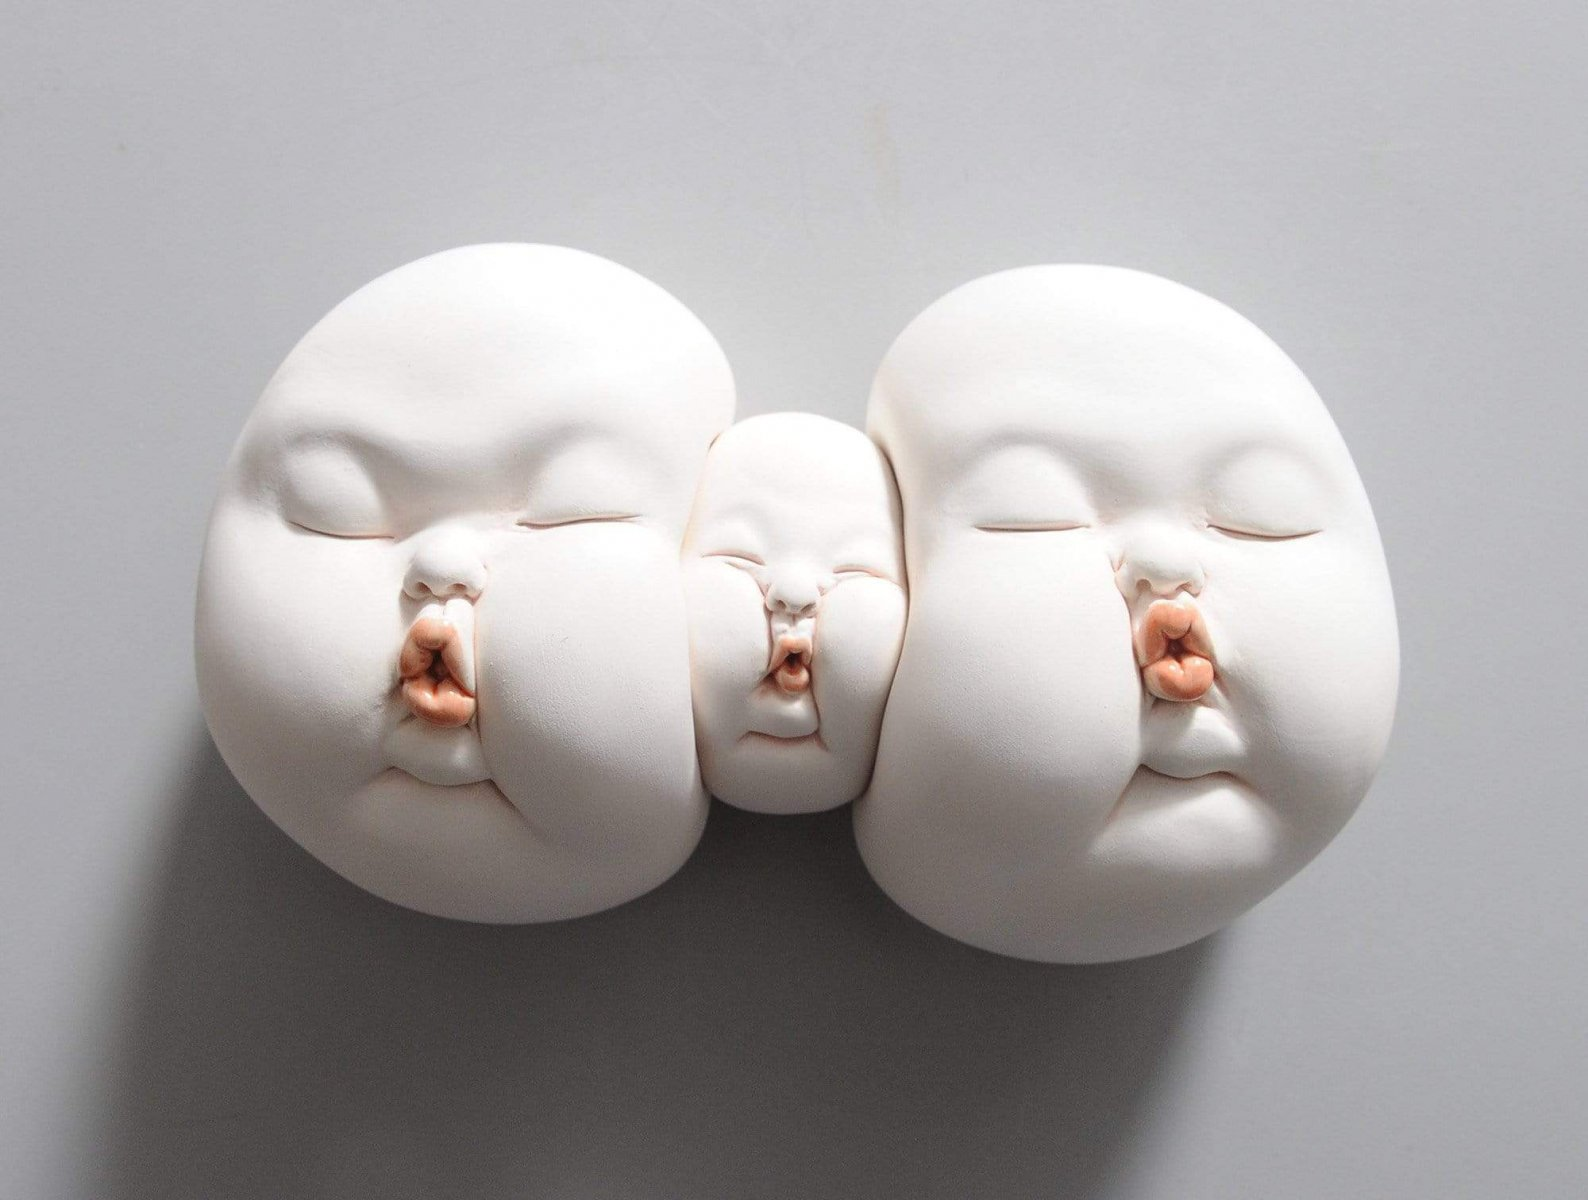 Protection - Johnson Tsang